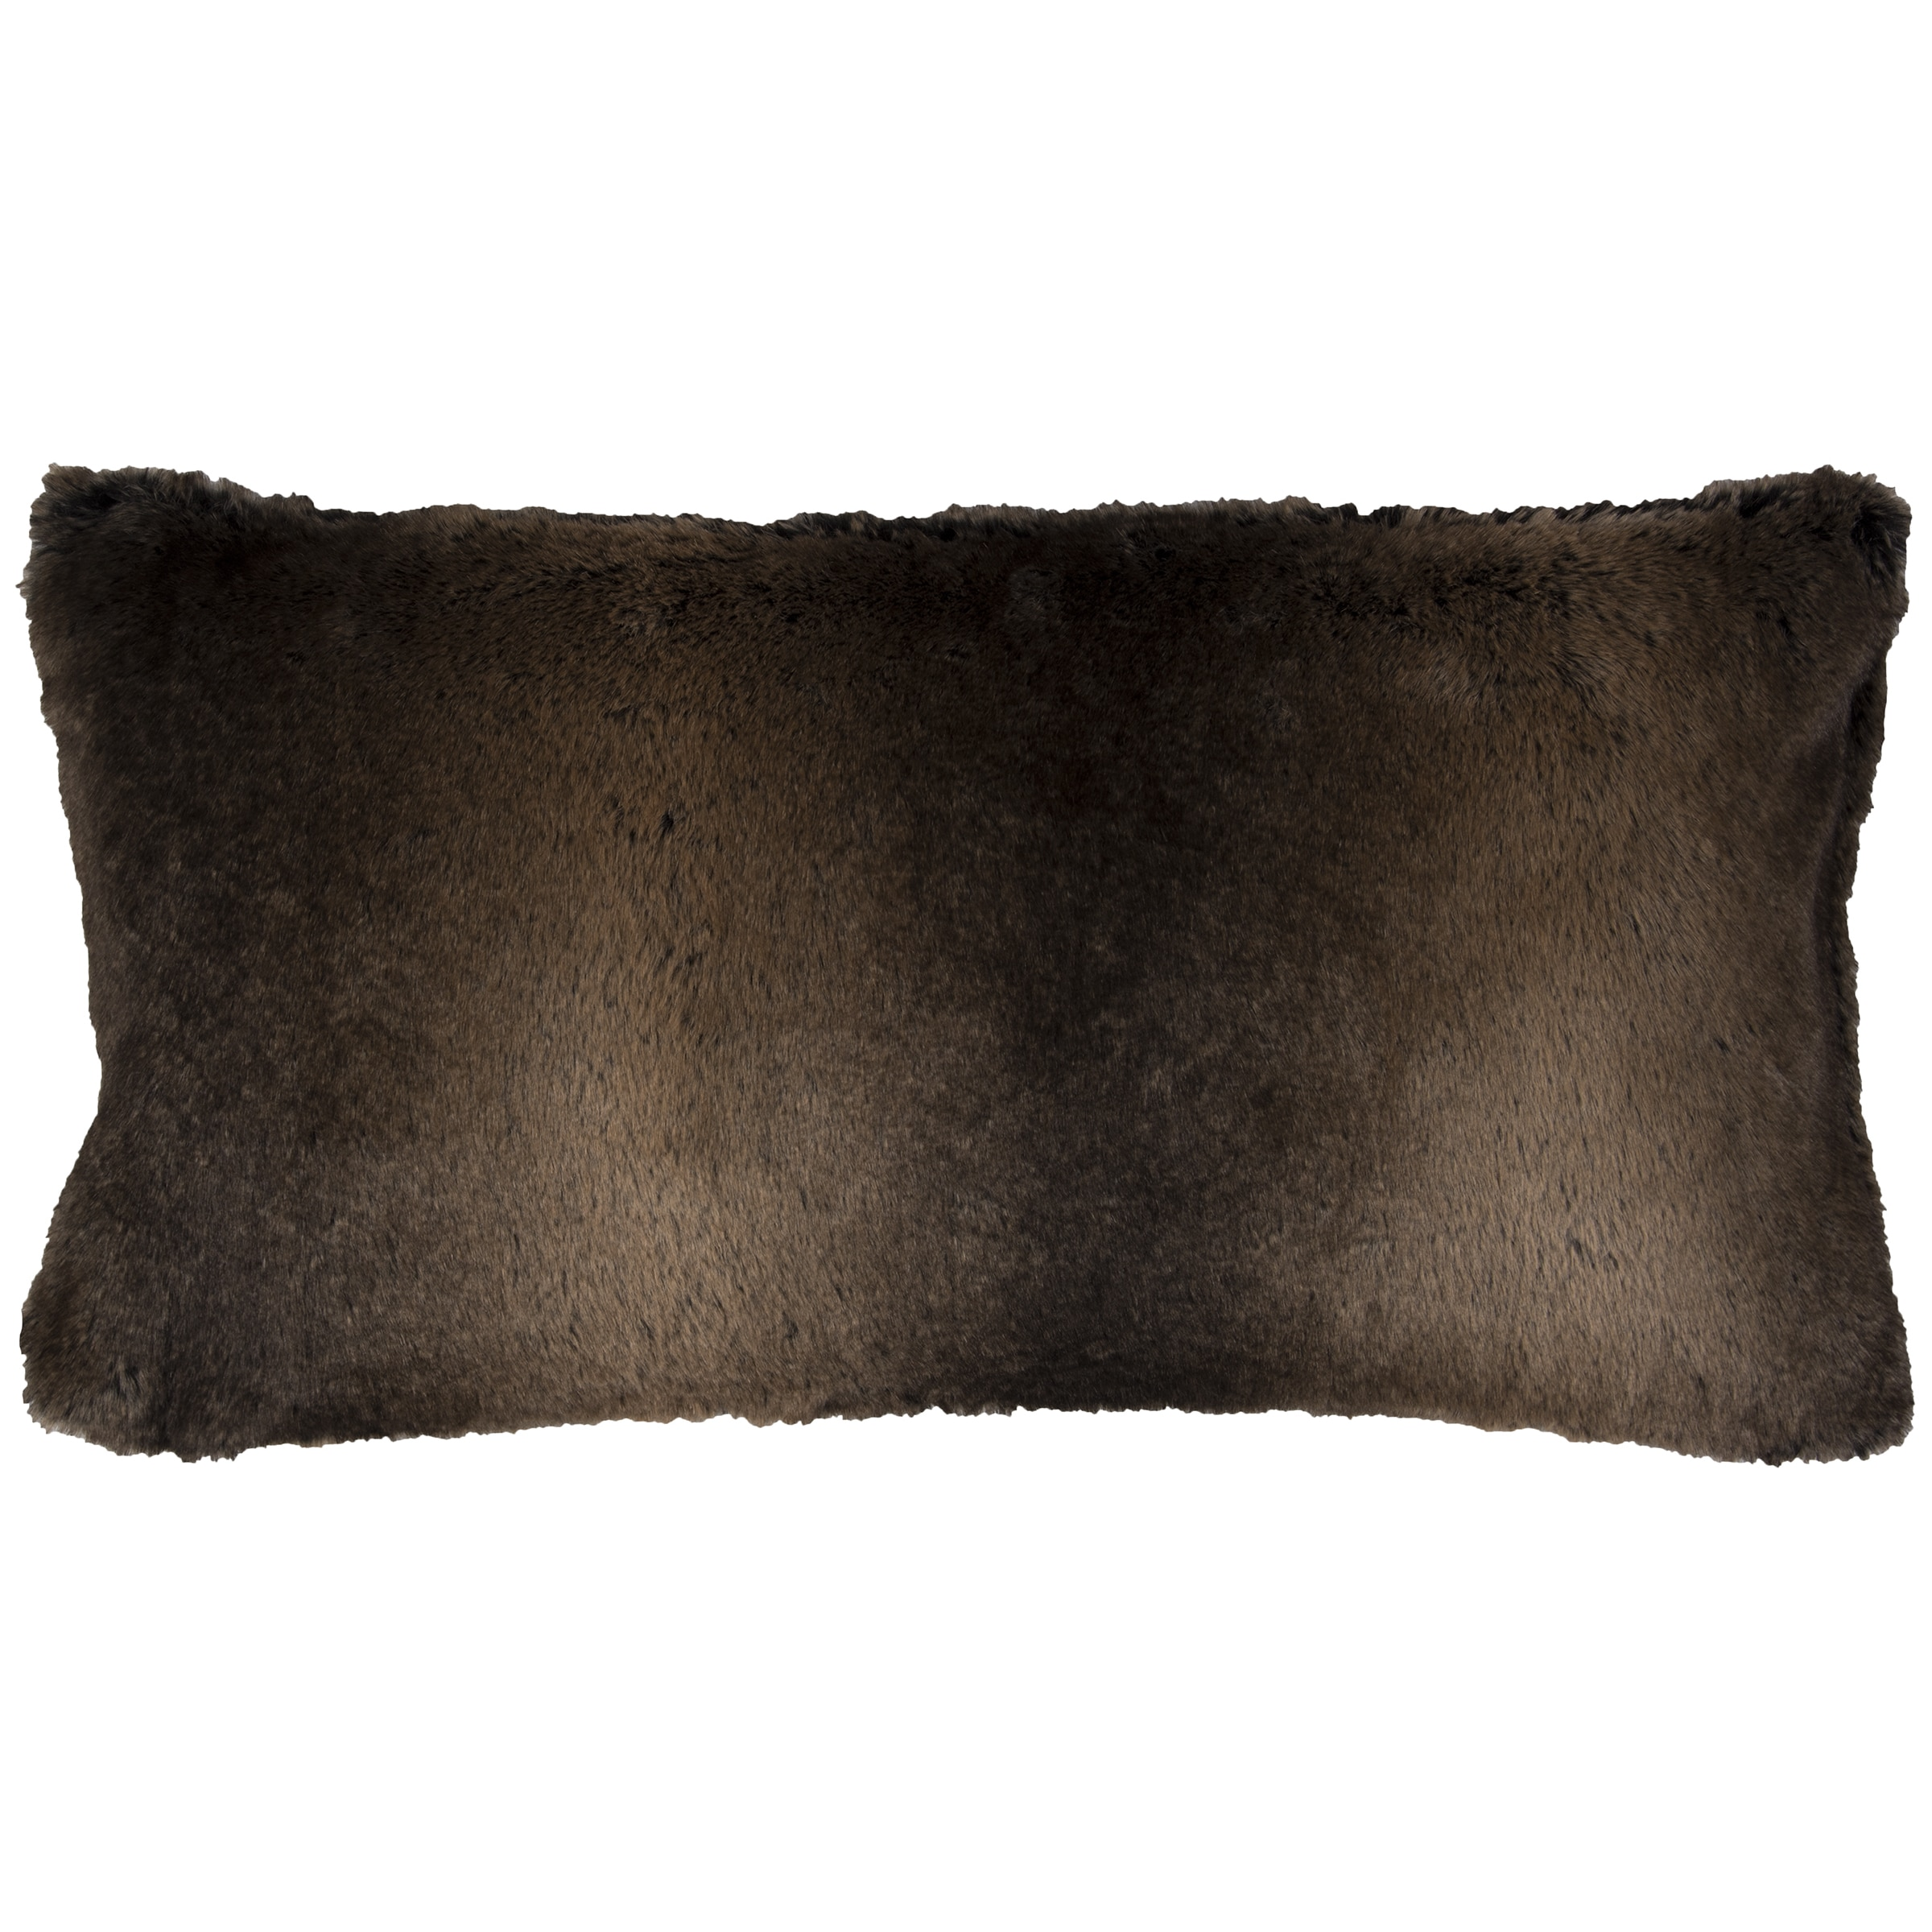 Picture of: Shop Rizzy Home Solid Brown Faux Fur Decorative Throw Pillow Overstock 14310025